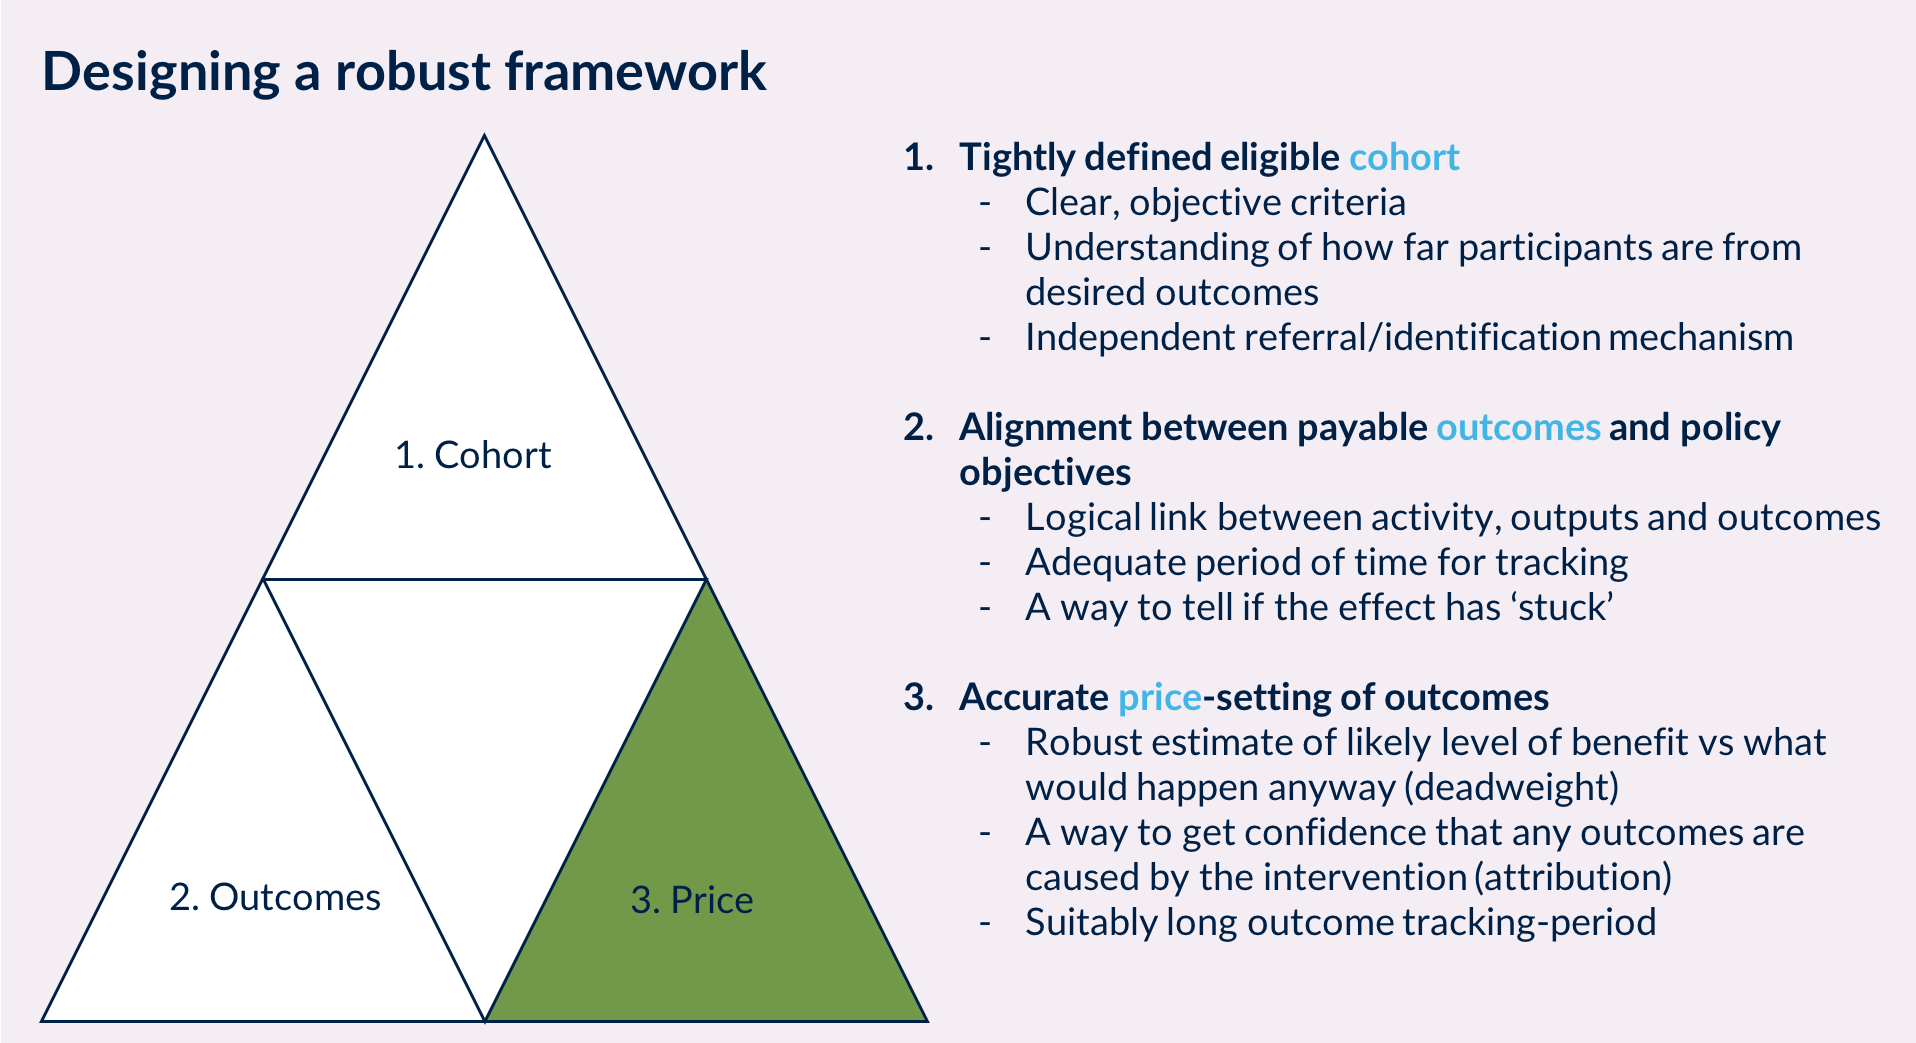 Designing a robust outcomes framework